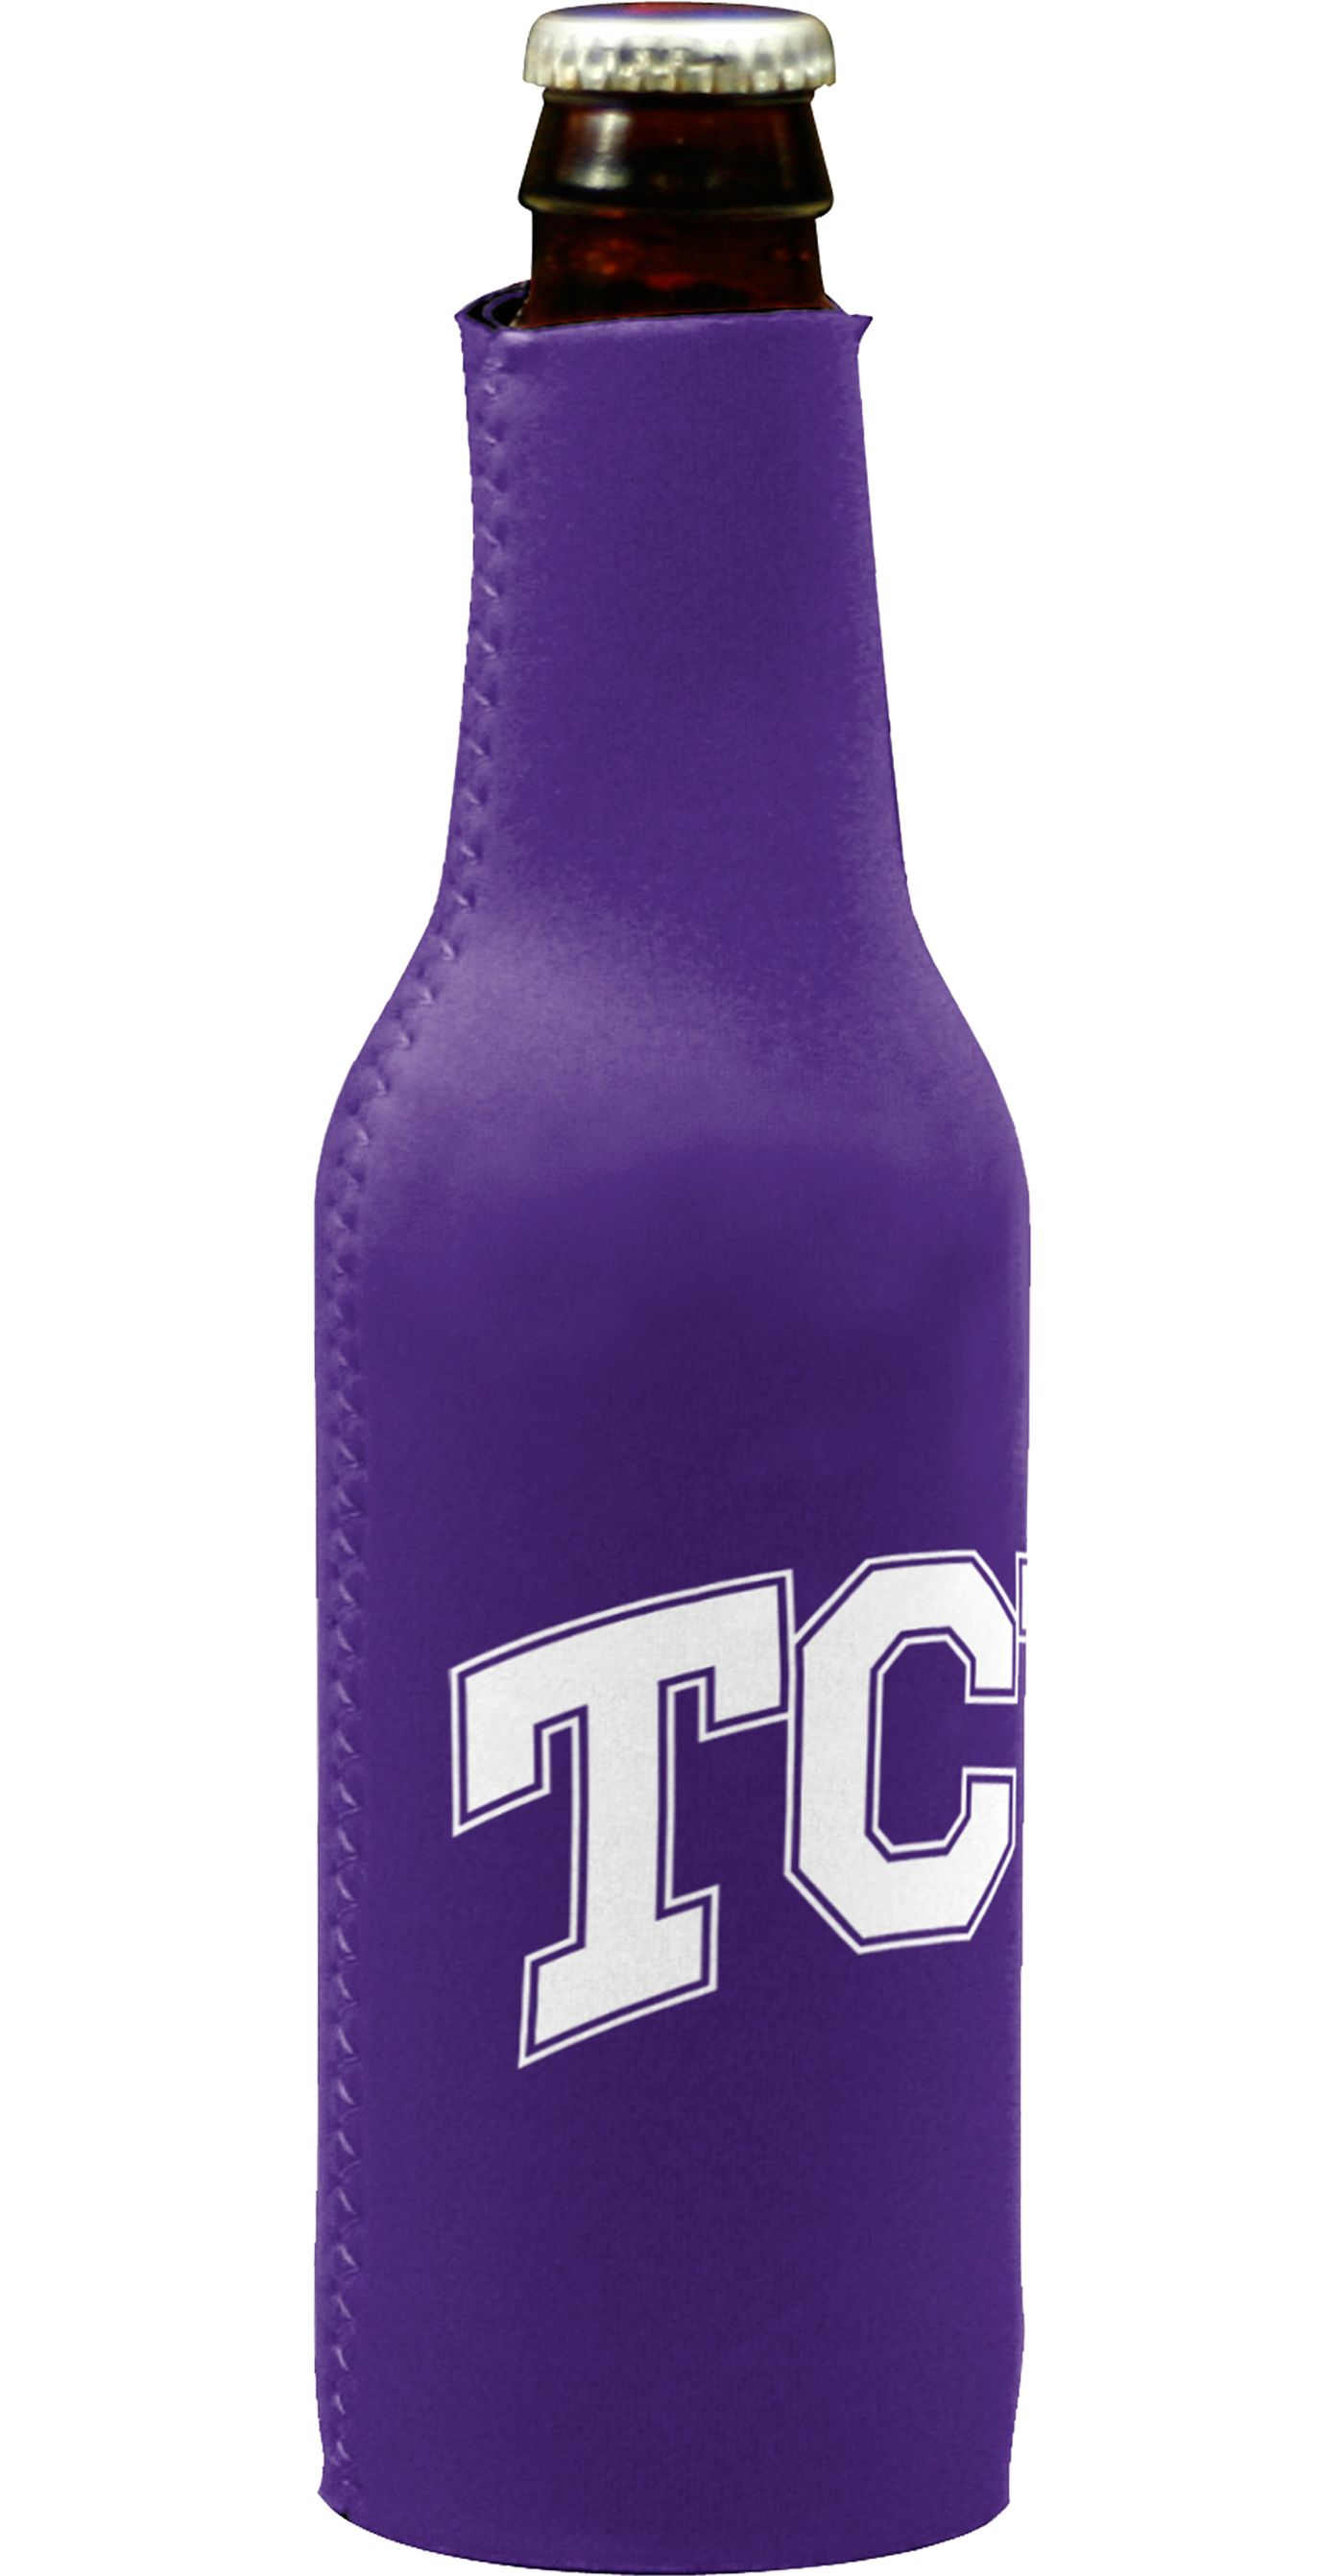 TCU Horned Frogs Bottle Koozie